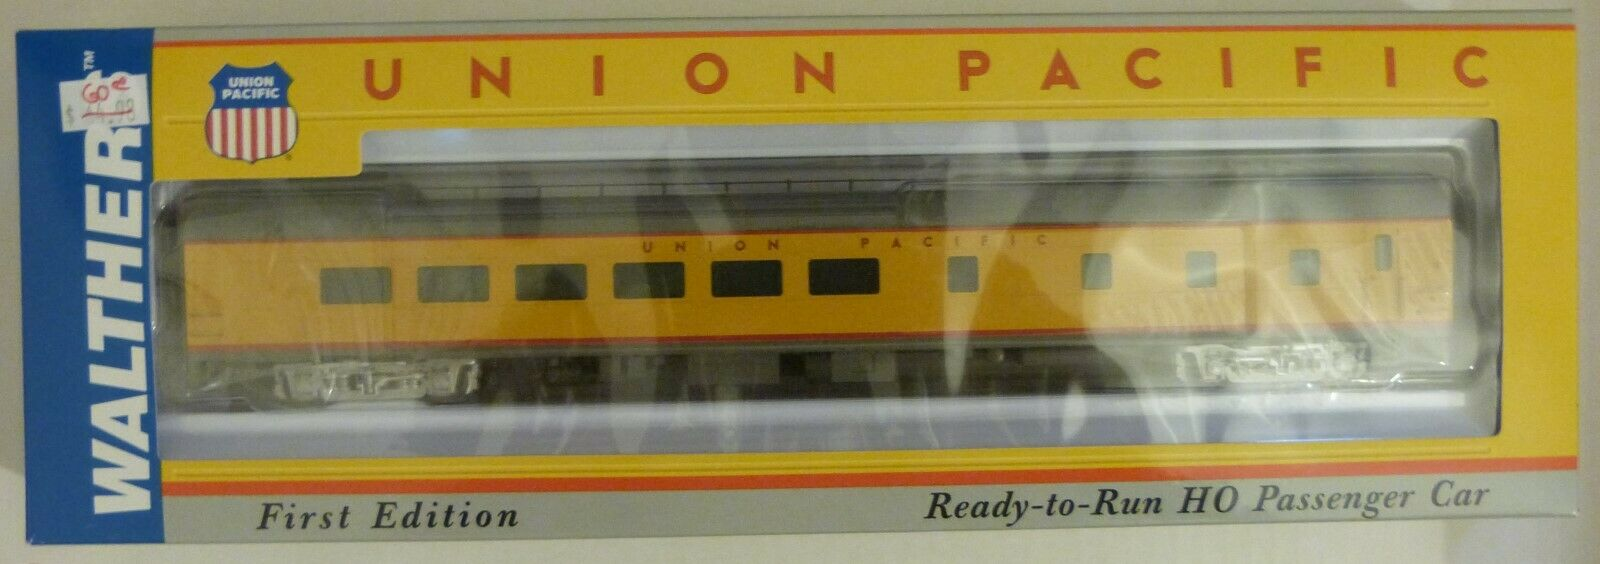 mejor vendido Walthers Union Pacific ciudades serie serie serie ACF 48 Diner de asiento 4800-4817 932-9540  mas barato